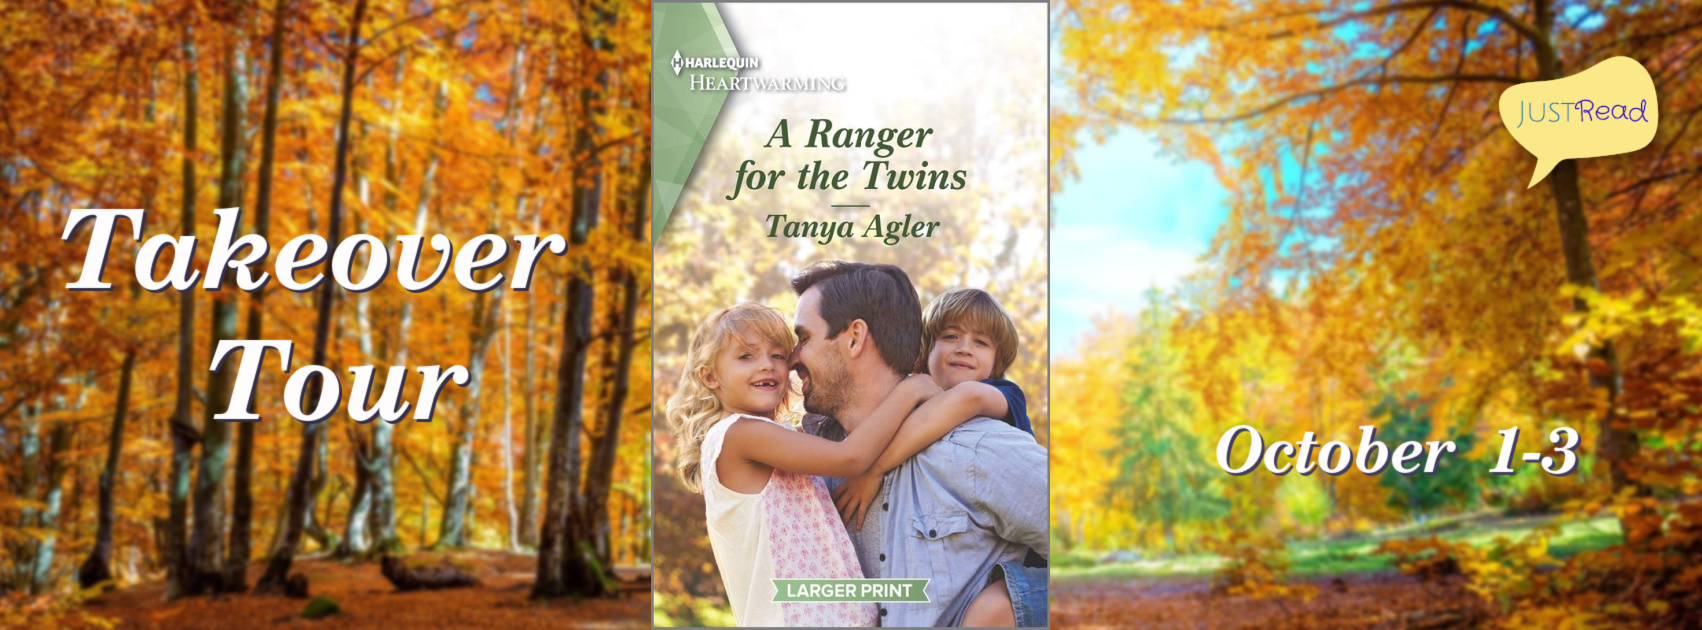 Welcome to the A Ranger for the Twins Takeover Tour & Giveaway!